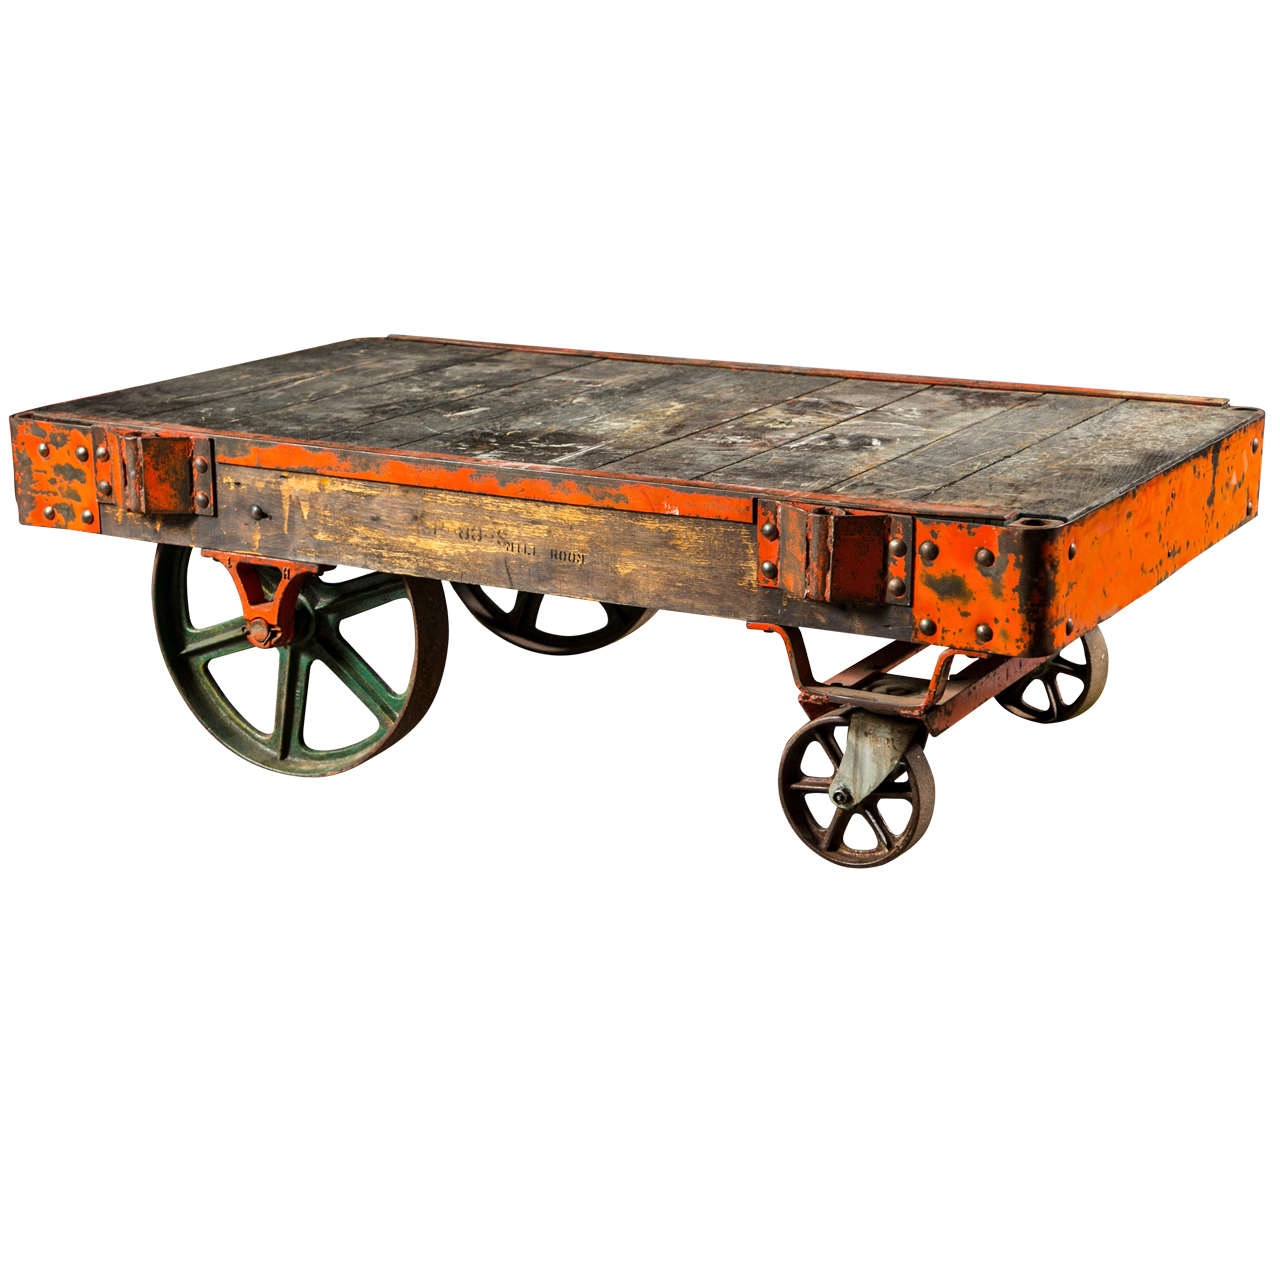 Industrial Coffee Table On Wheels At 1stdibs: American Industrial Factory Cart, Mid 20th C At 1stdibs